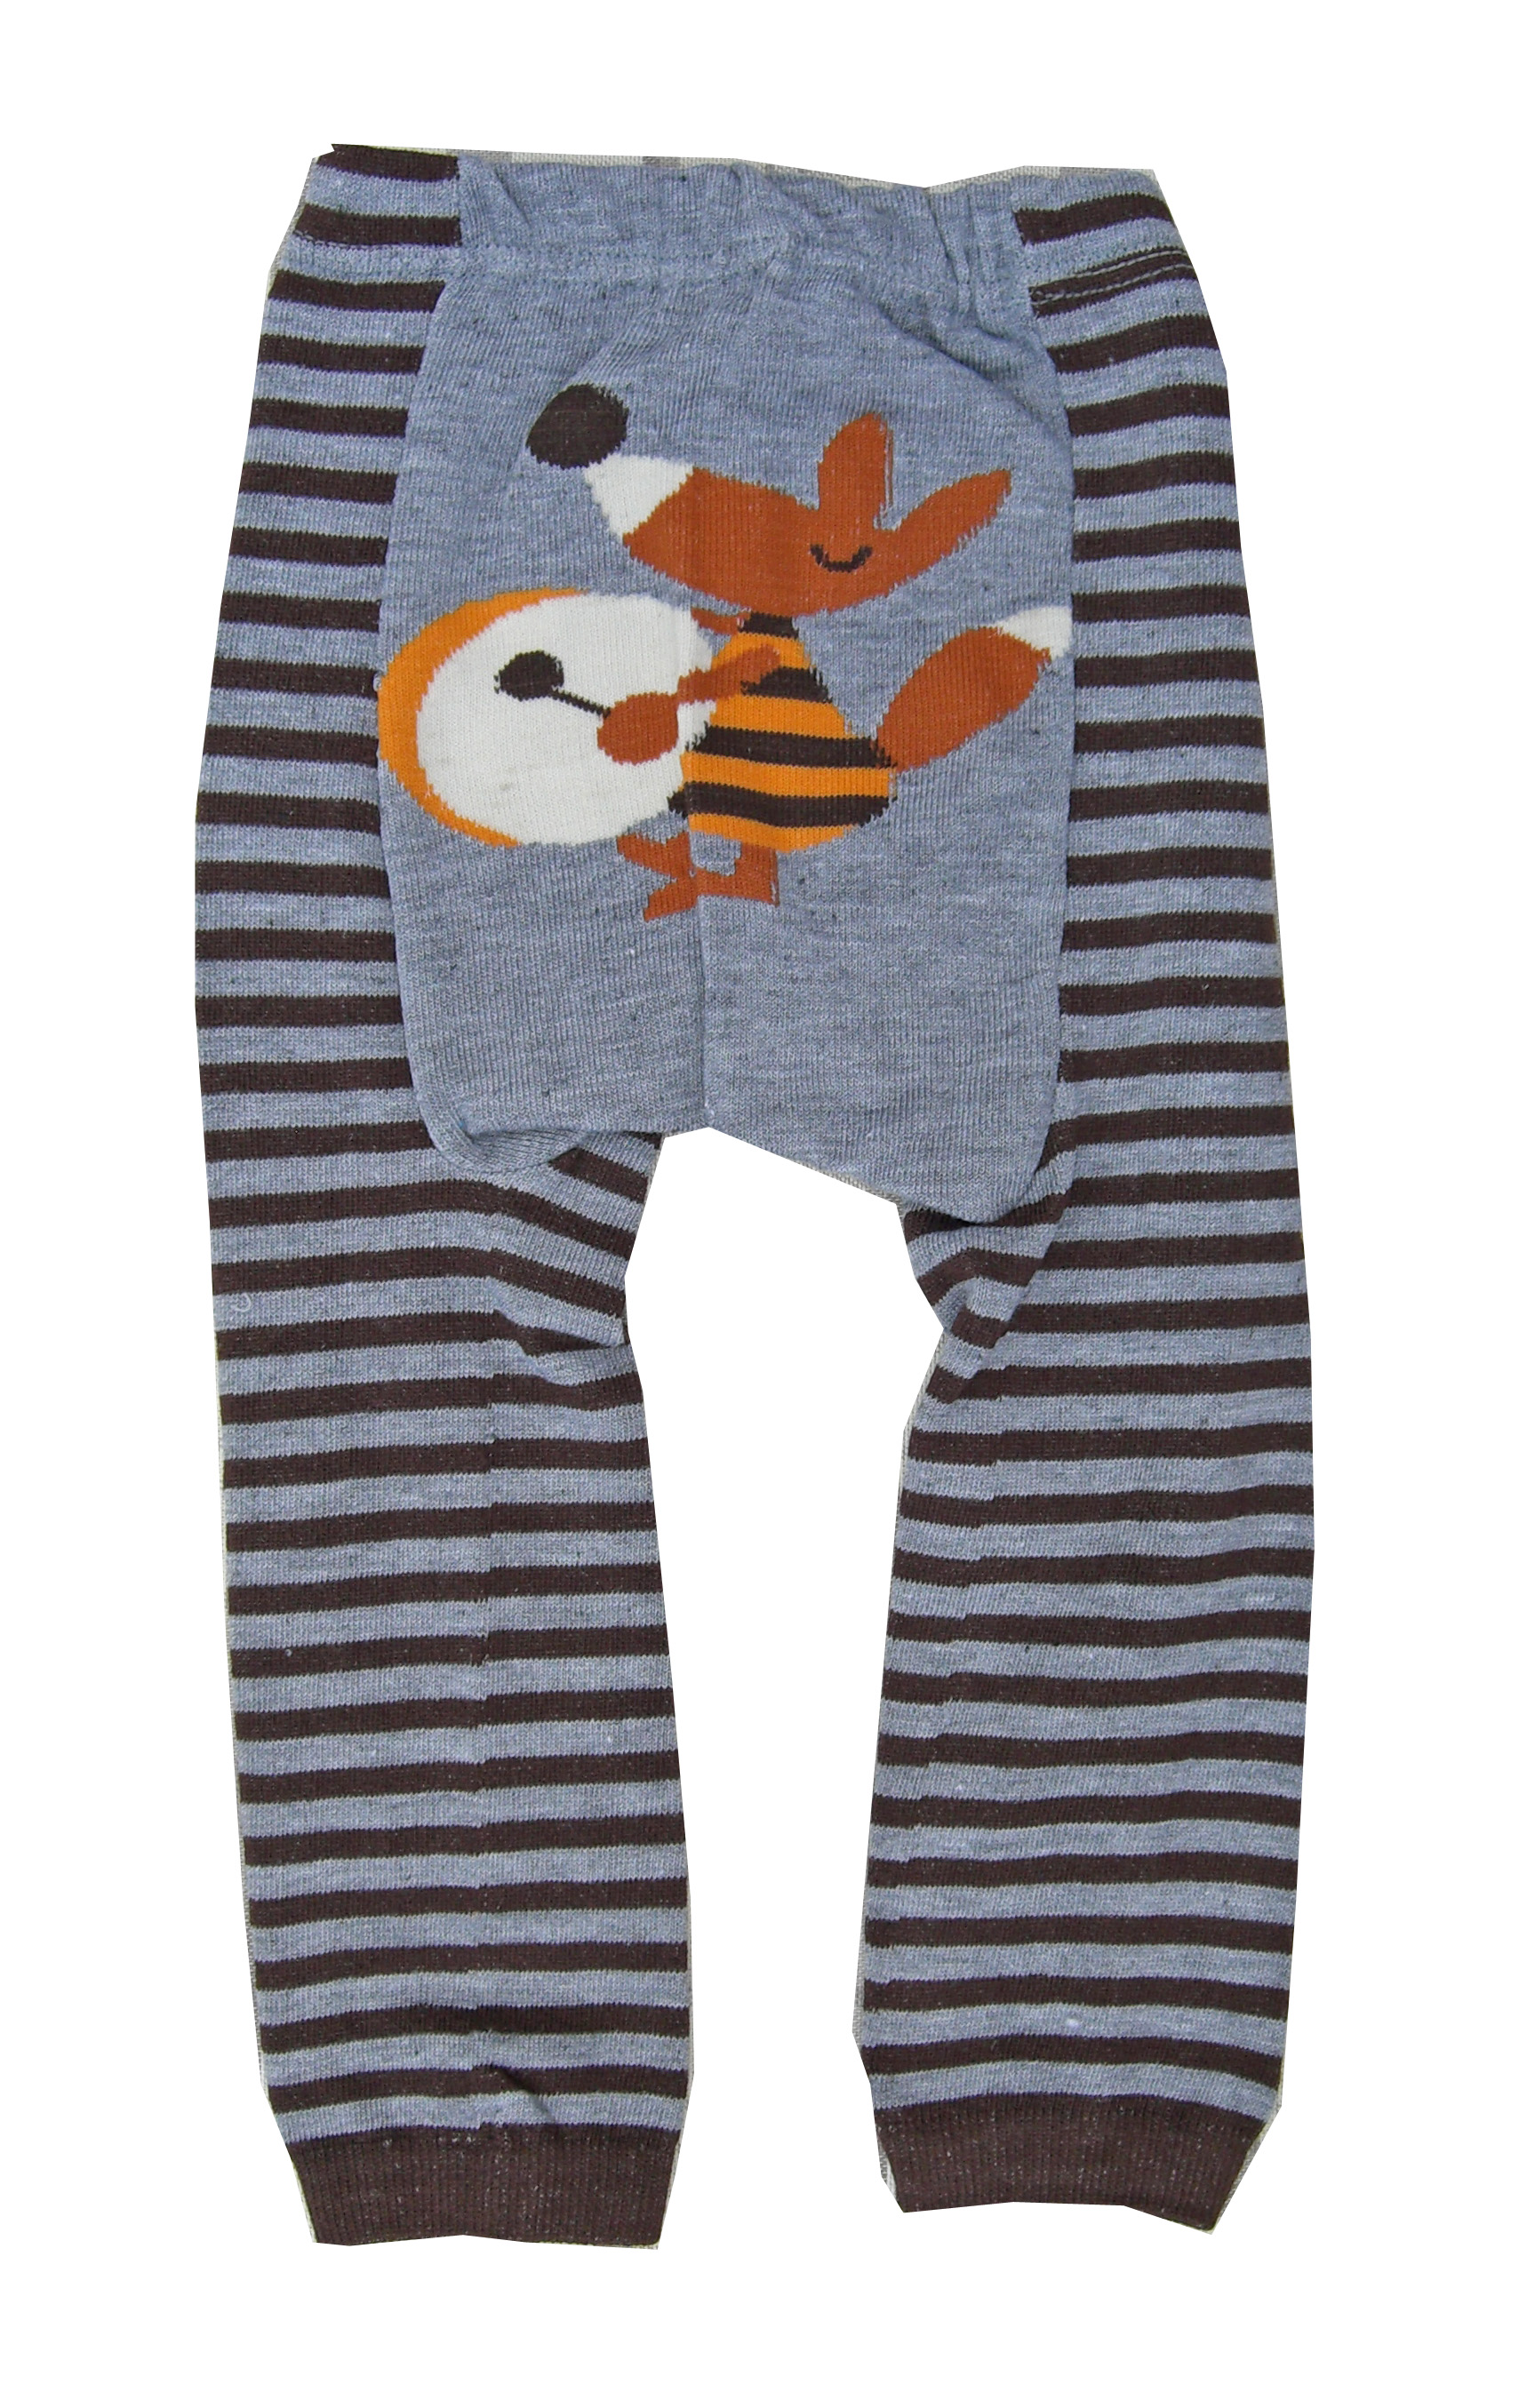 Fox_on_bum_with_drum_legging_pants_baby_toddler_busha_tights_original